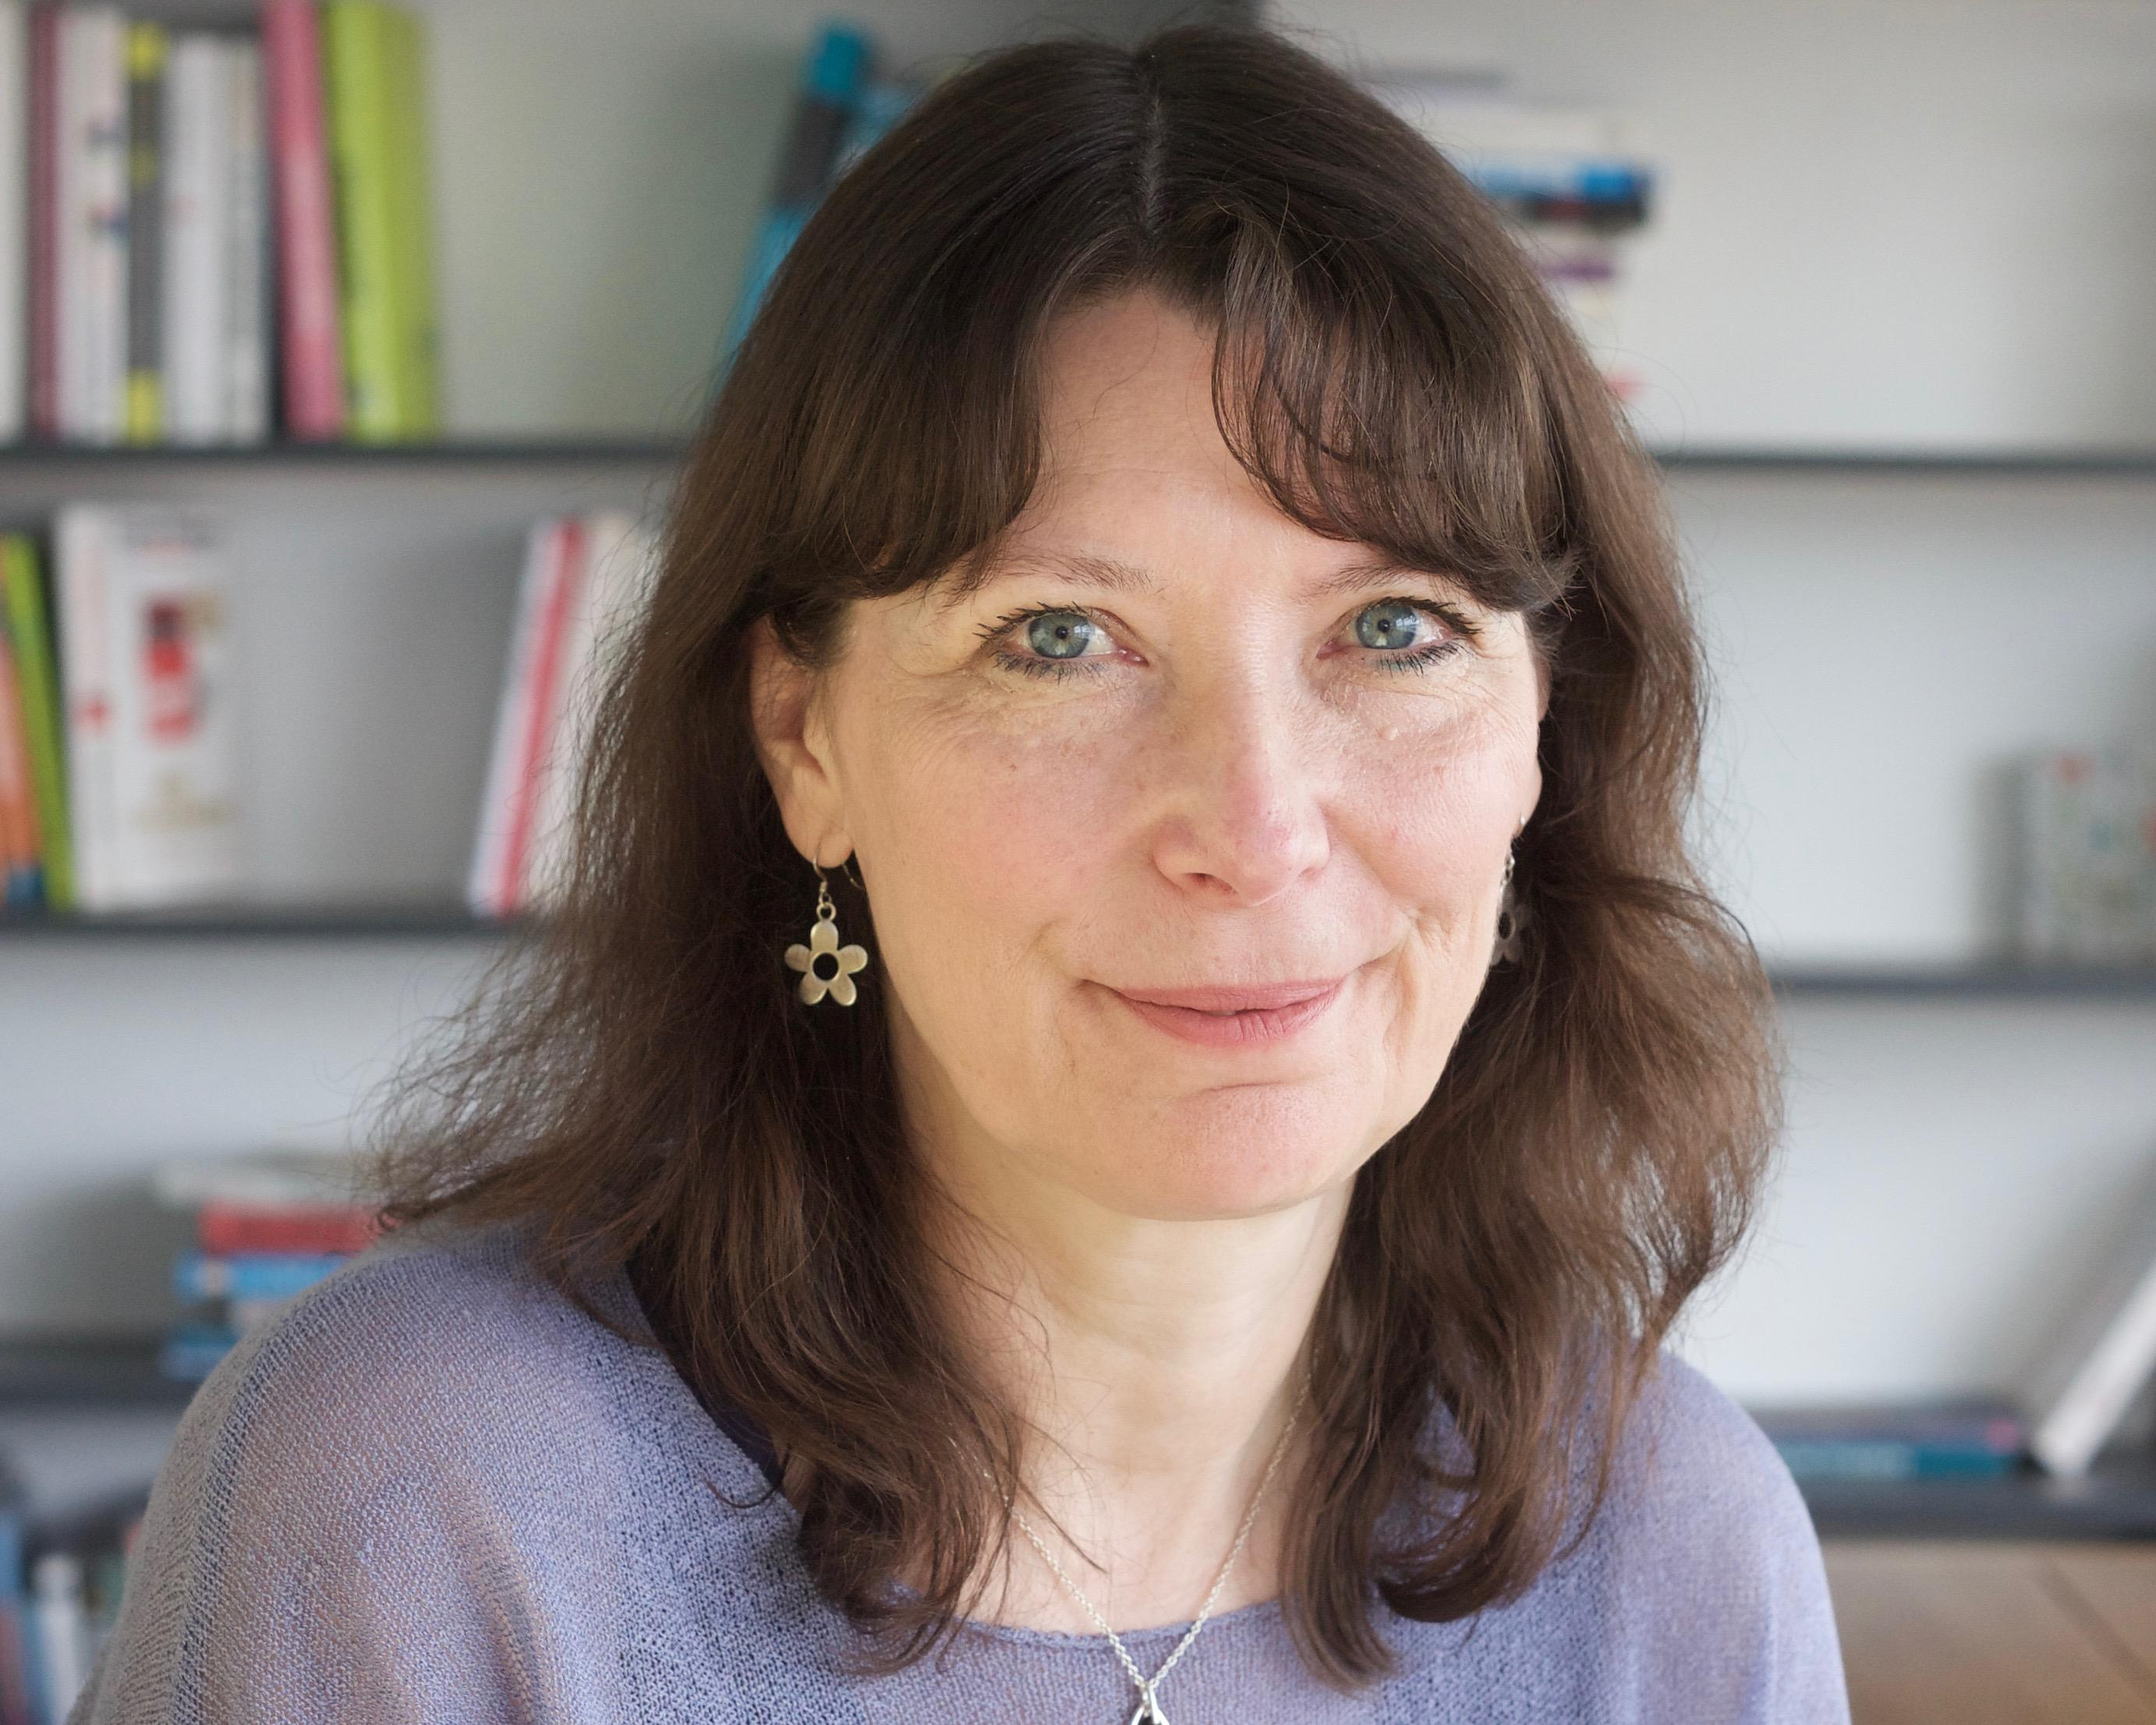 Claire Harcup – Director of Copy